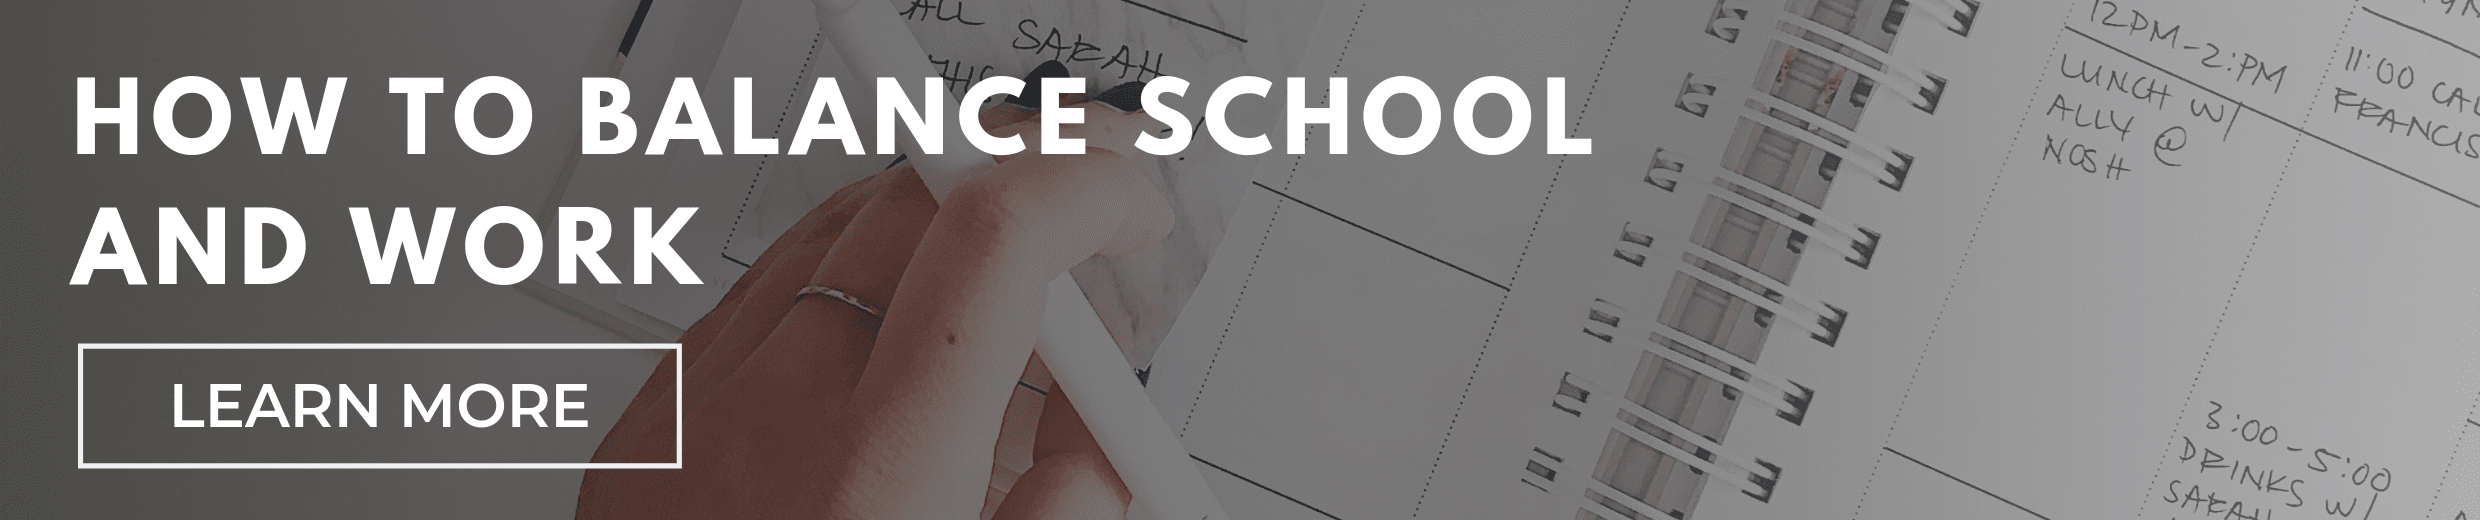 7 Tips to Help You Balance School and Work